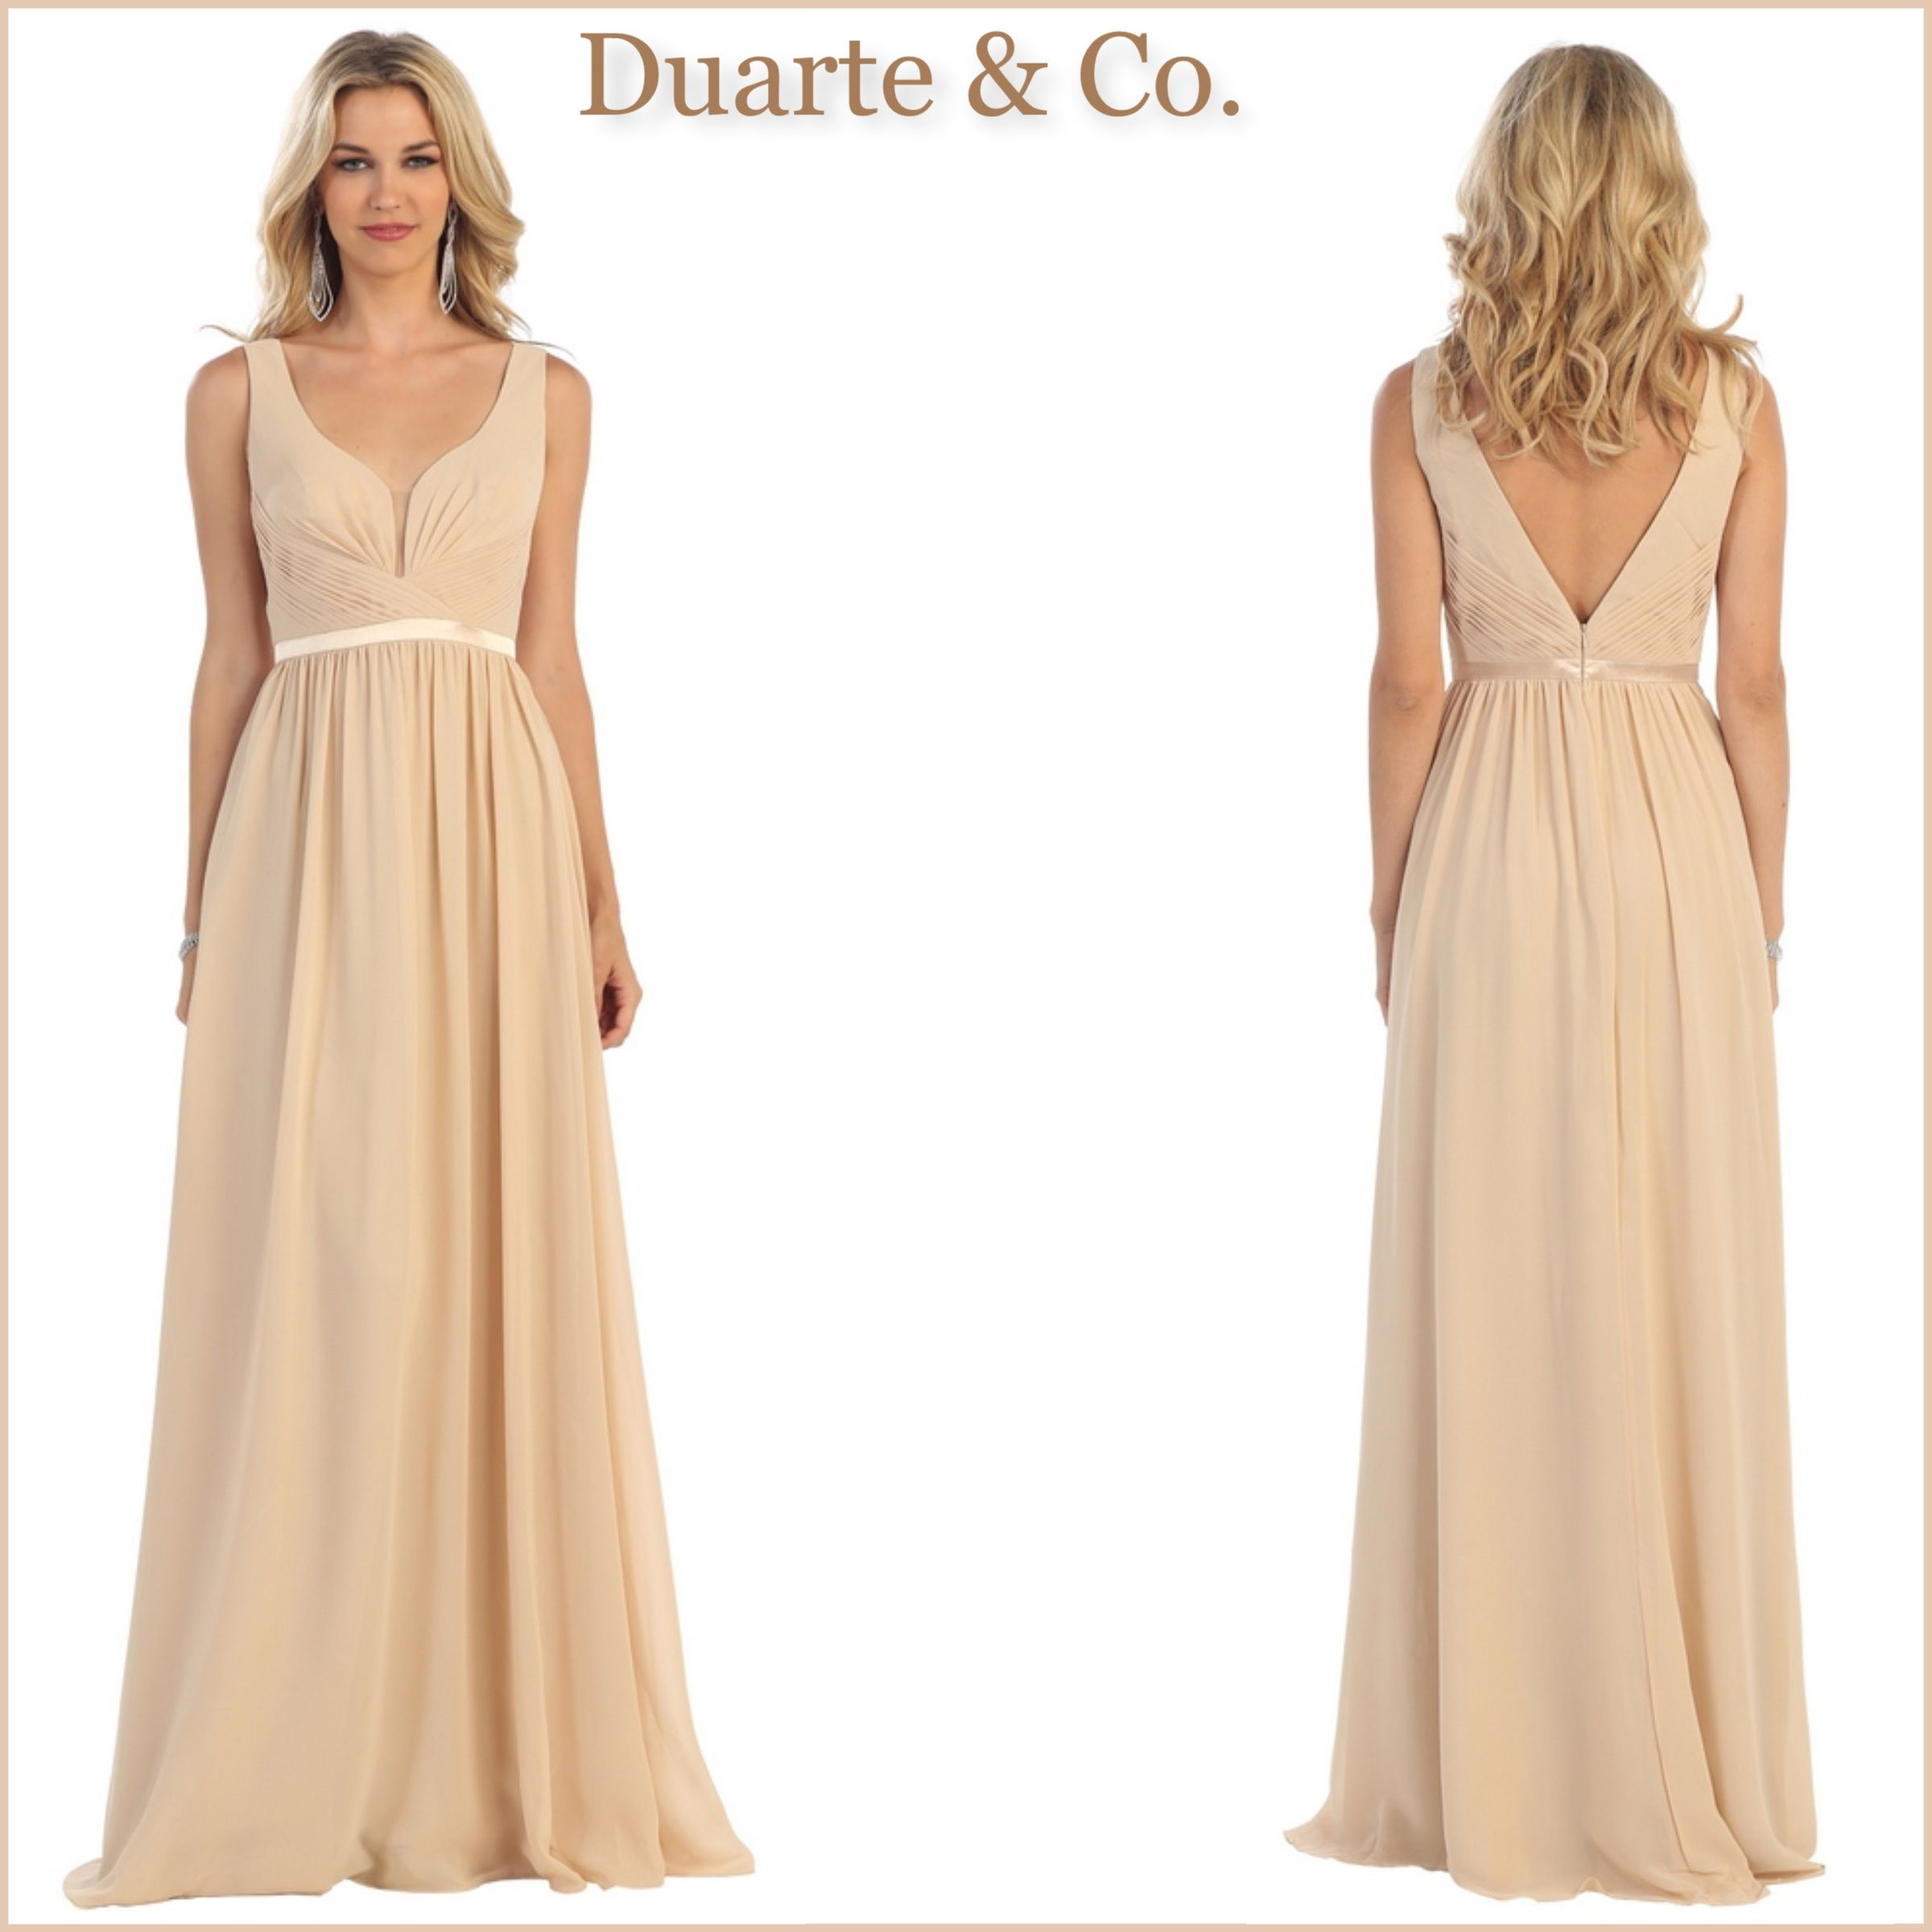 MQ1225  106.00 Chiffon Bridesmaids Dress W Plus Sizes Comes in 16 colors  Available in plus sizes 4 to size 20. 08c0116c2